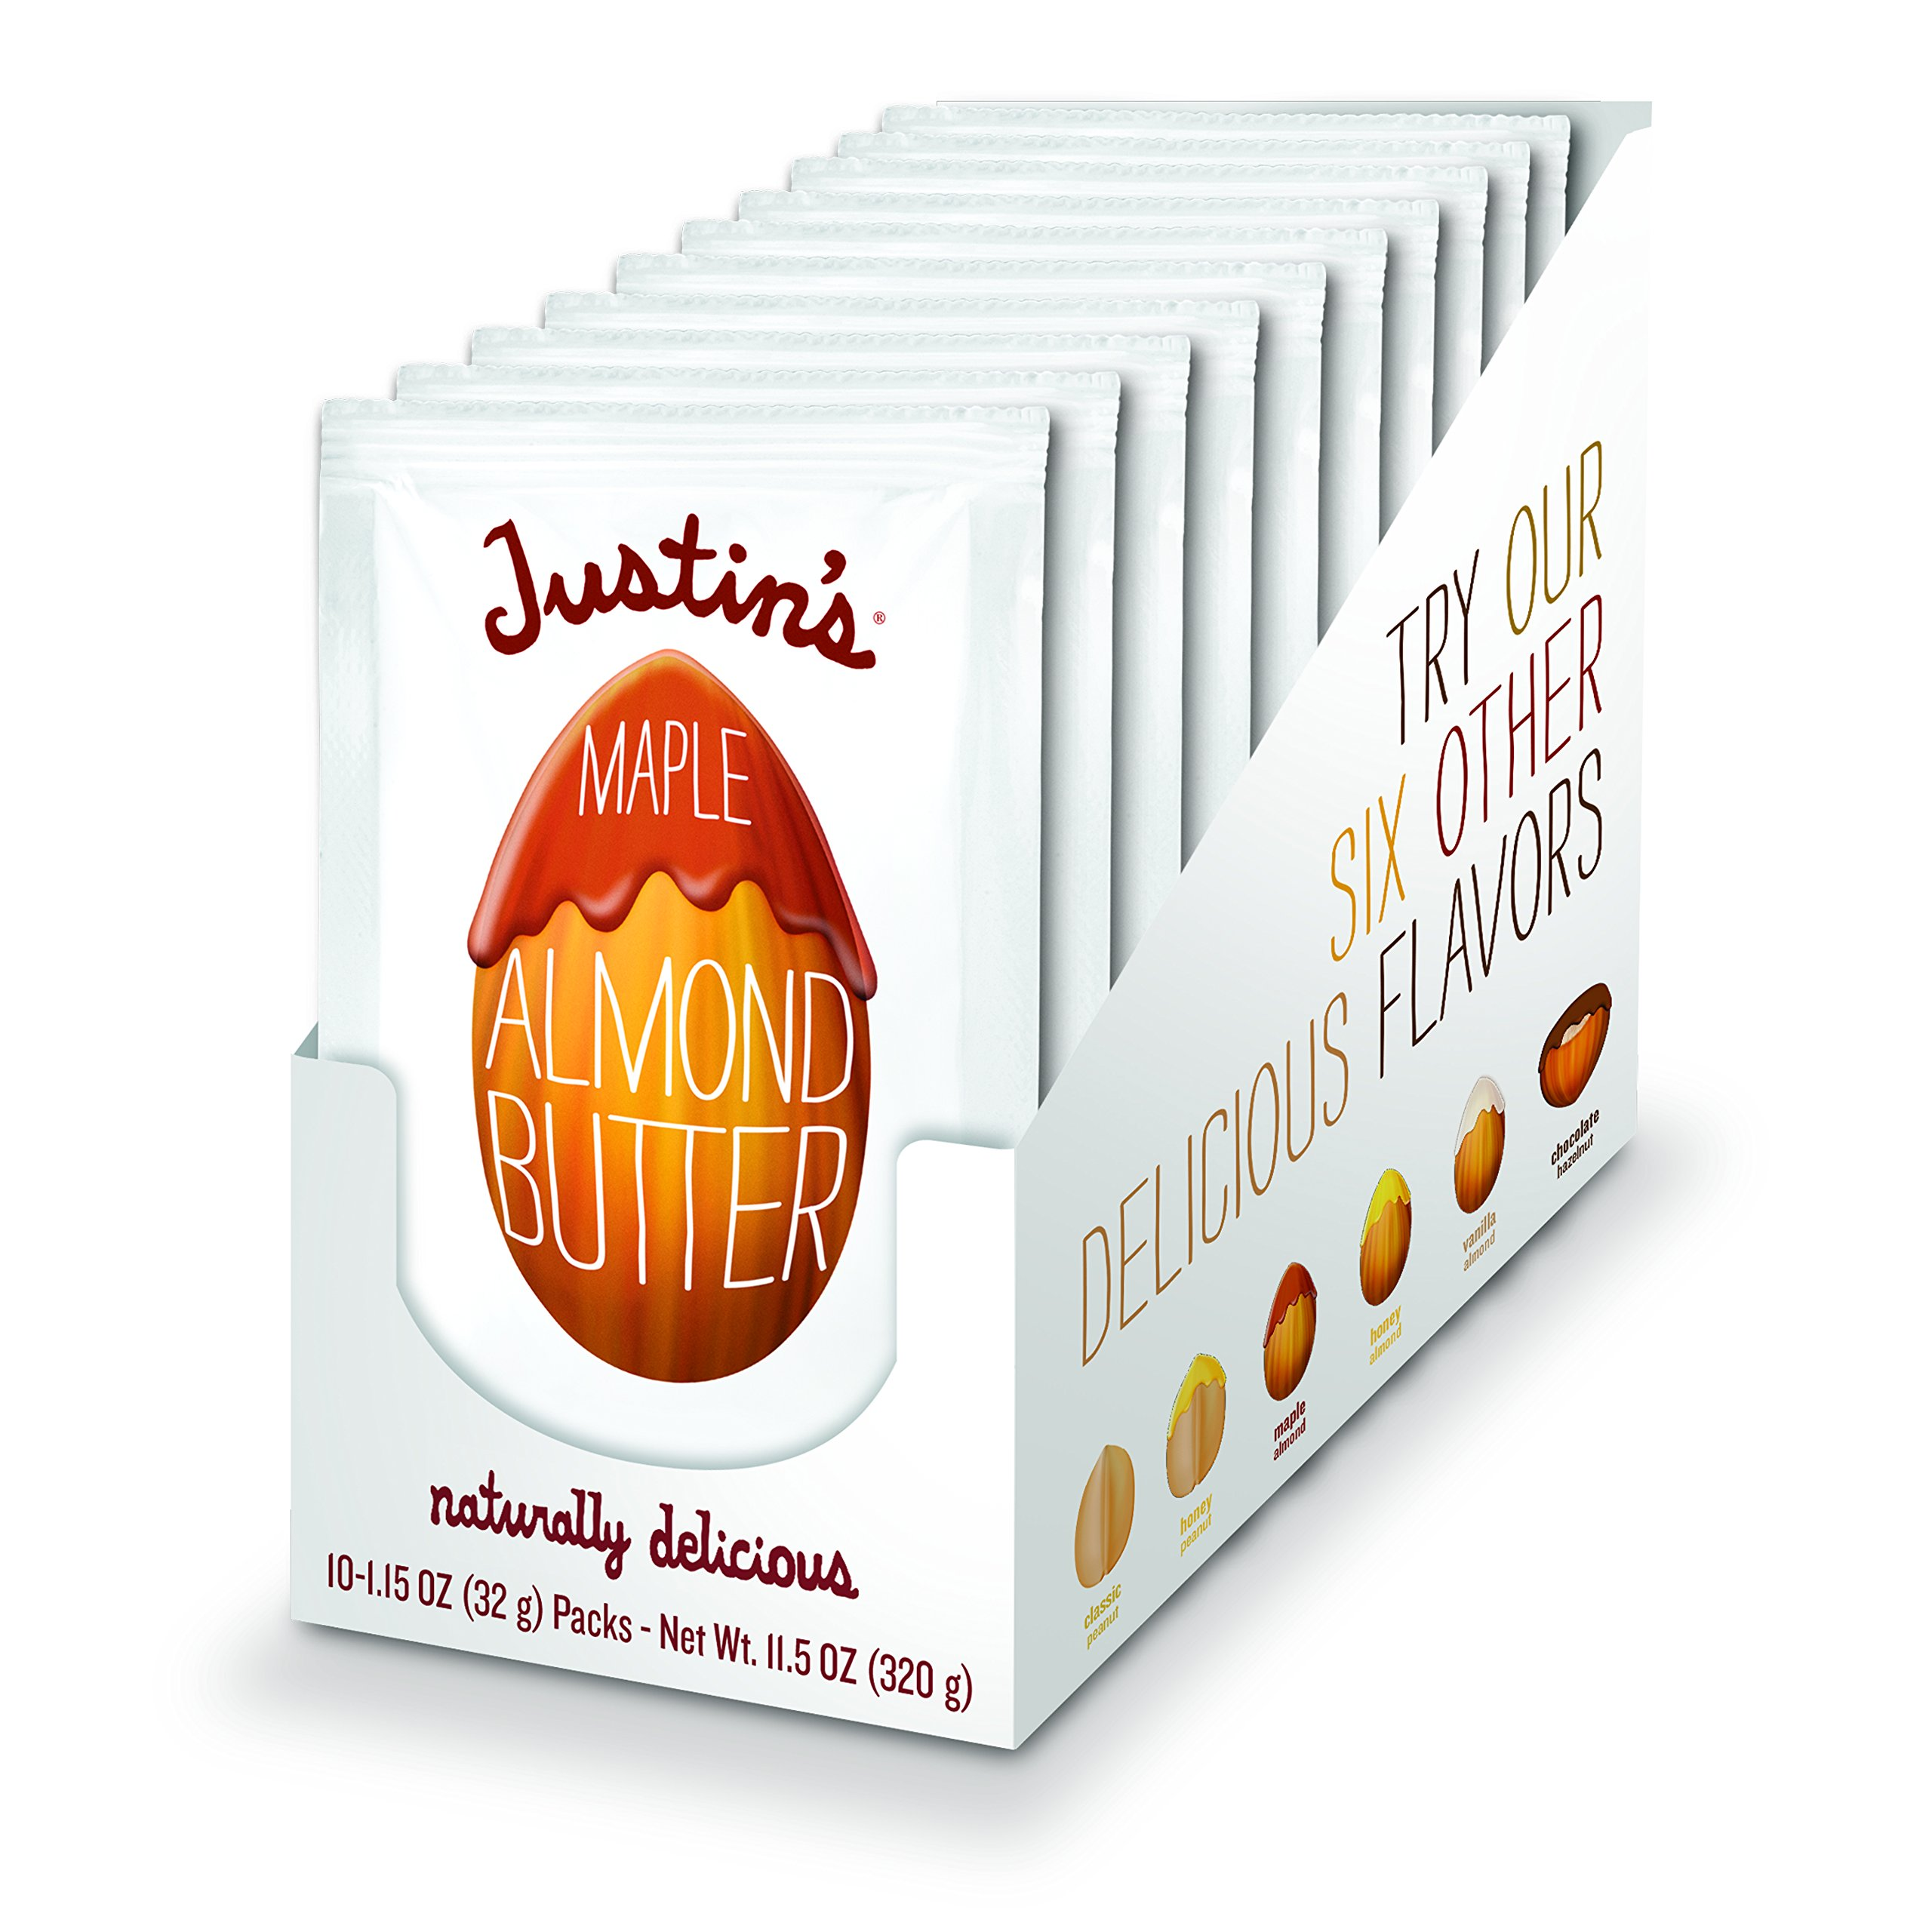 Maple Almond Butter Squeeze Packs by Justin's, Gluten-free, Non-GMO, Responsibly Sourced, Pack of 10 (1.15oz each)